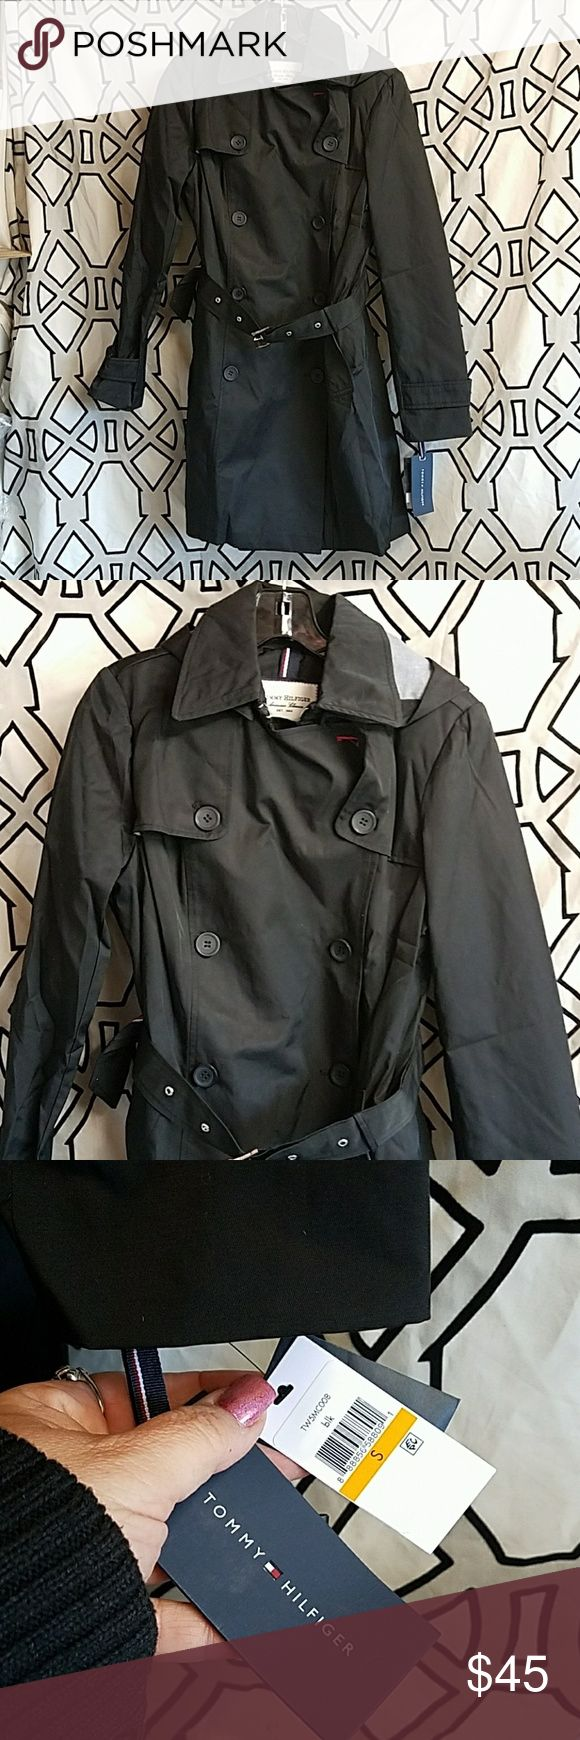 Tommy Hilfiger Black Trench Coat Small New with tags Black  Size Small  Total length is 38 inches Tommy Hilfiger Jackets & Coats Trench Coats